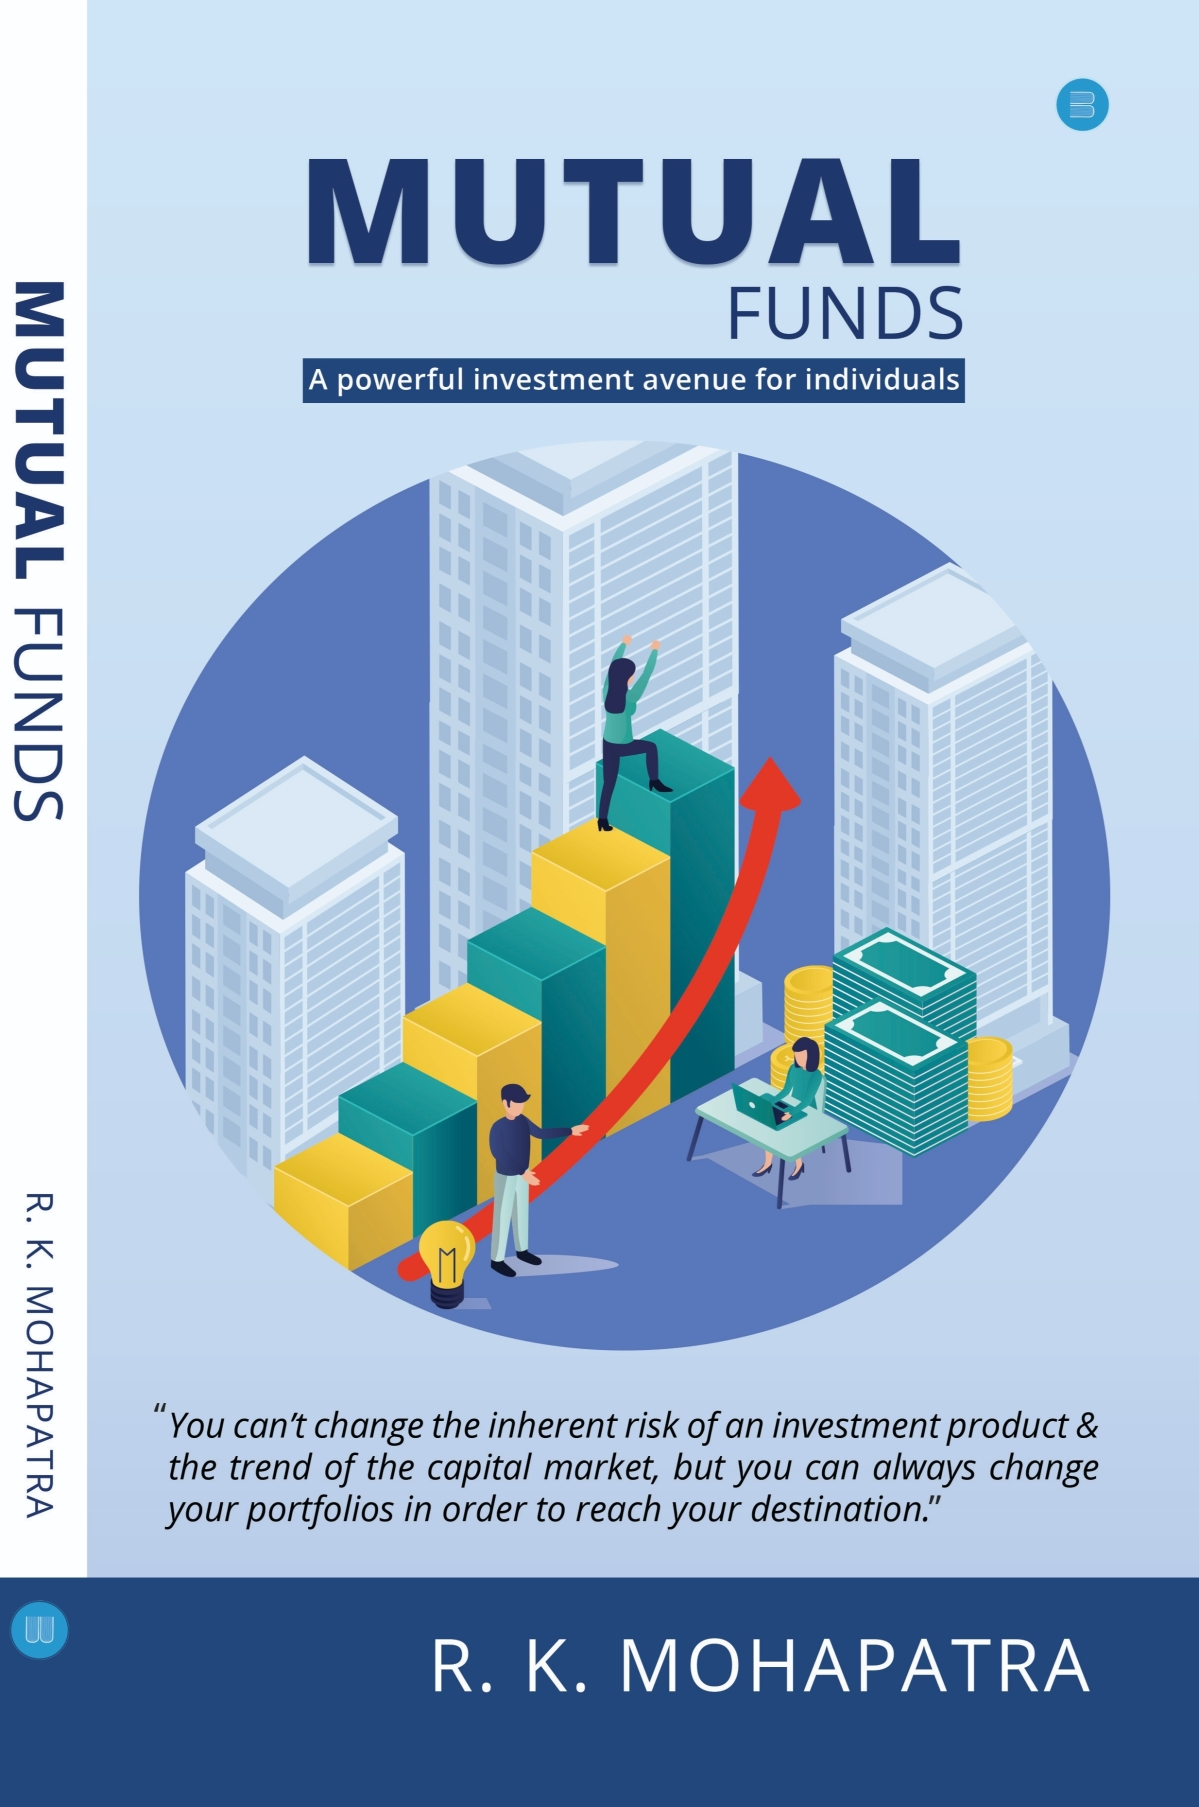 'Mutual Funds: A Powerful Investment Avenue for Individuals' book getting overwhelming response